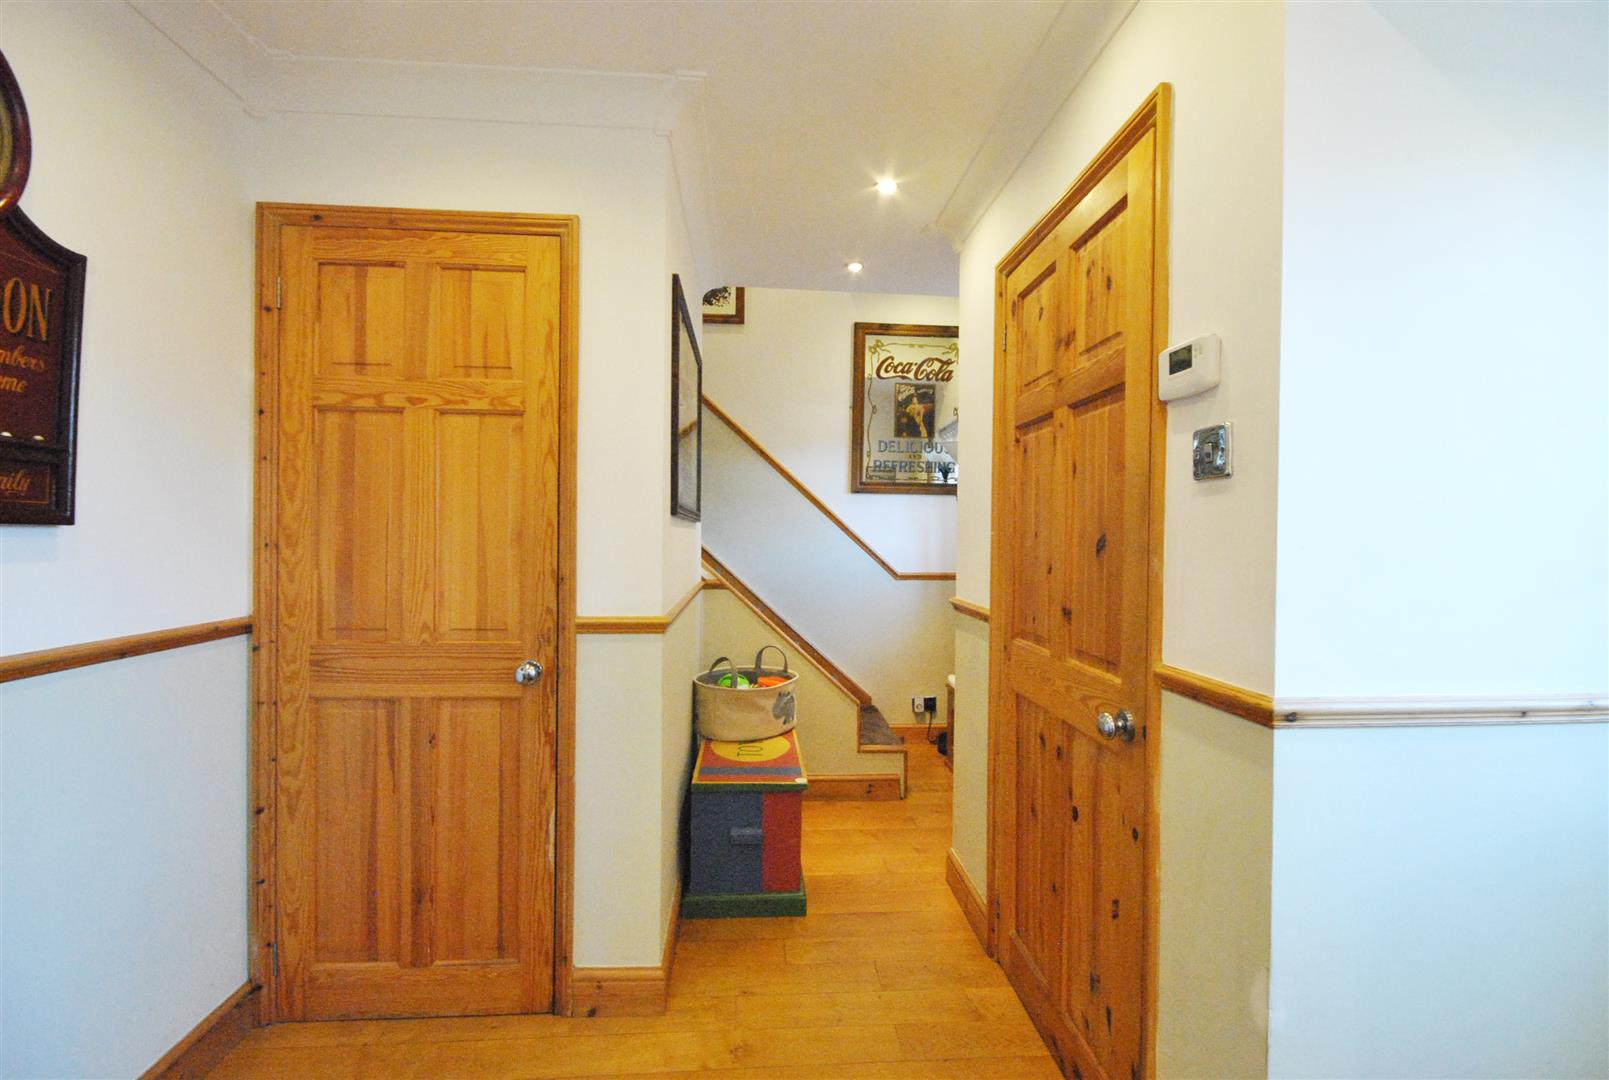 3 Bedrooms, House - Terraced